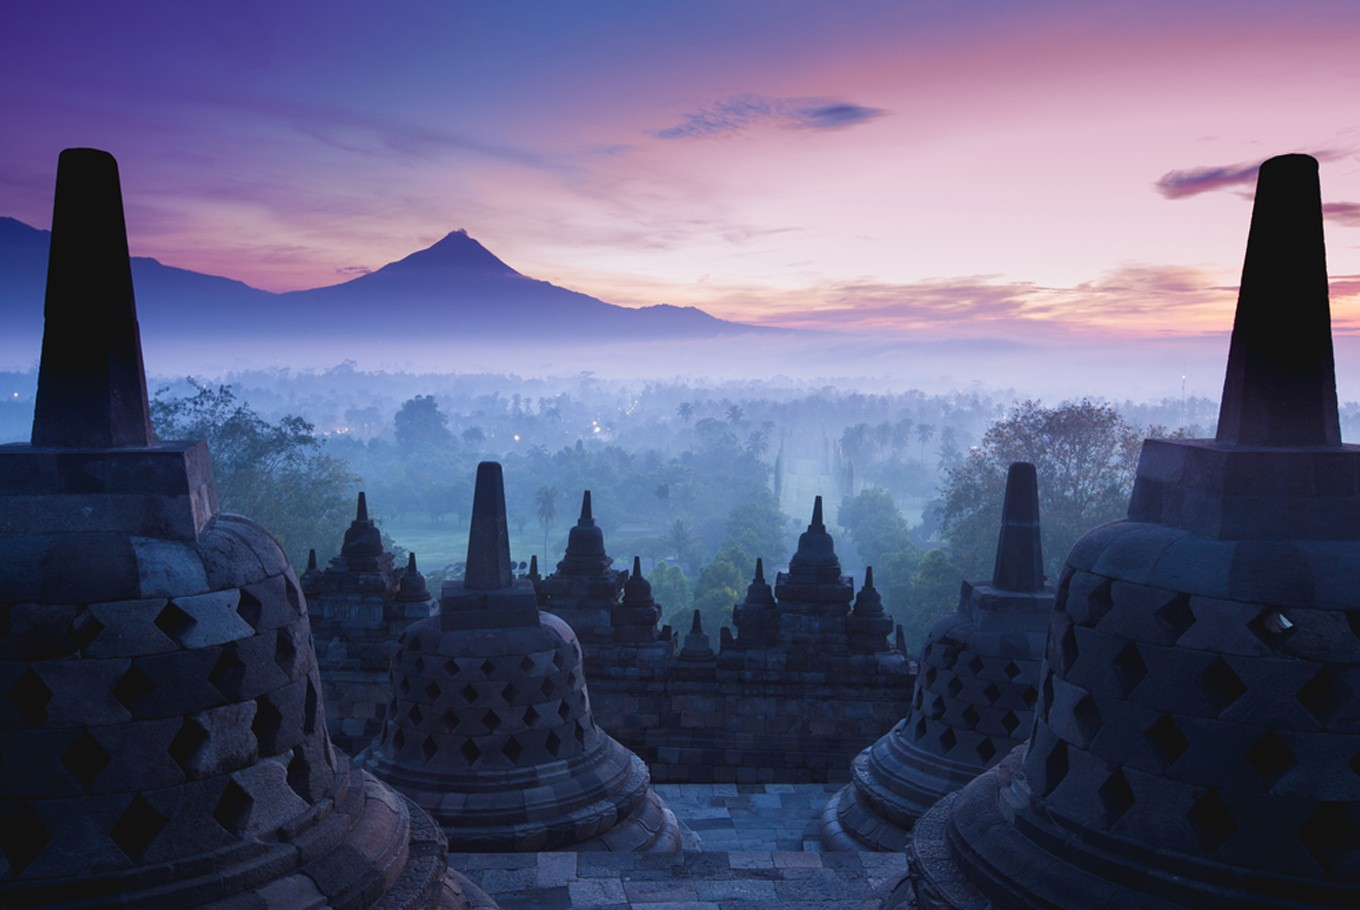 Borobudur art exhibition features works by Balinese artists